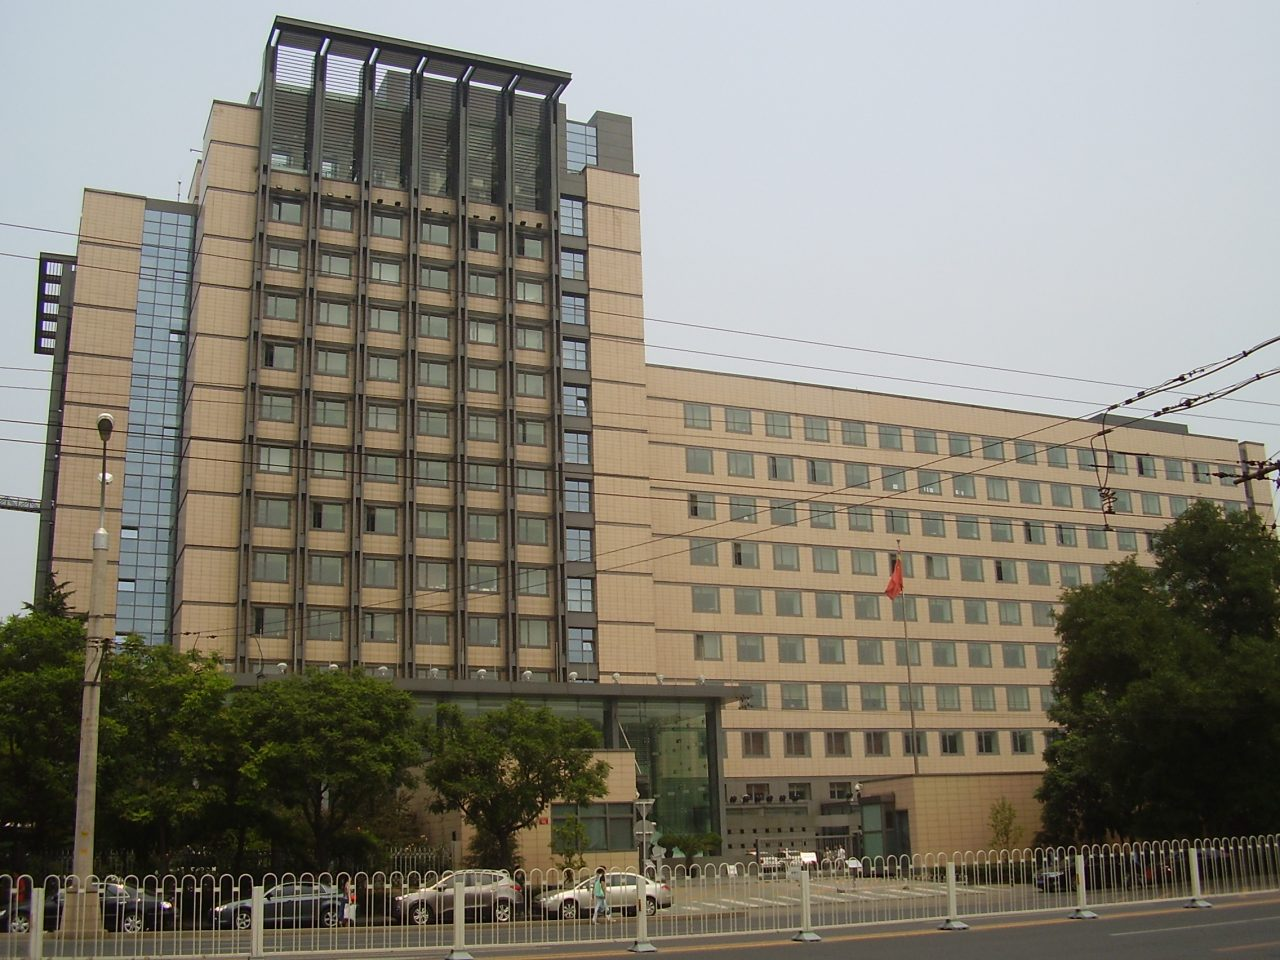 Civil Aviation Administration of China headquarters - No. 155 Four East West Main Street (Dongsi Xidajie), Dongcheng District, Beijing 100710 - Attribution: WhisperToMe [CC0]